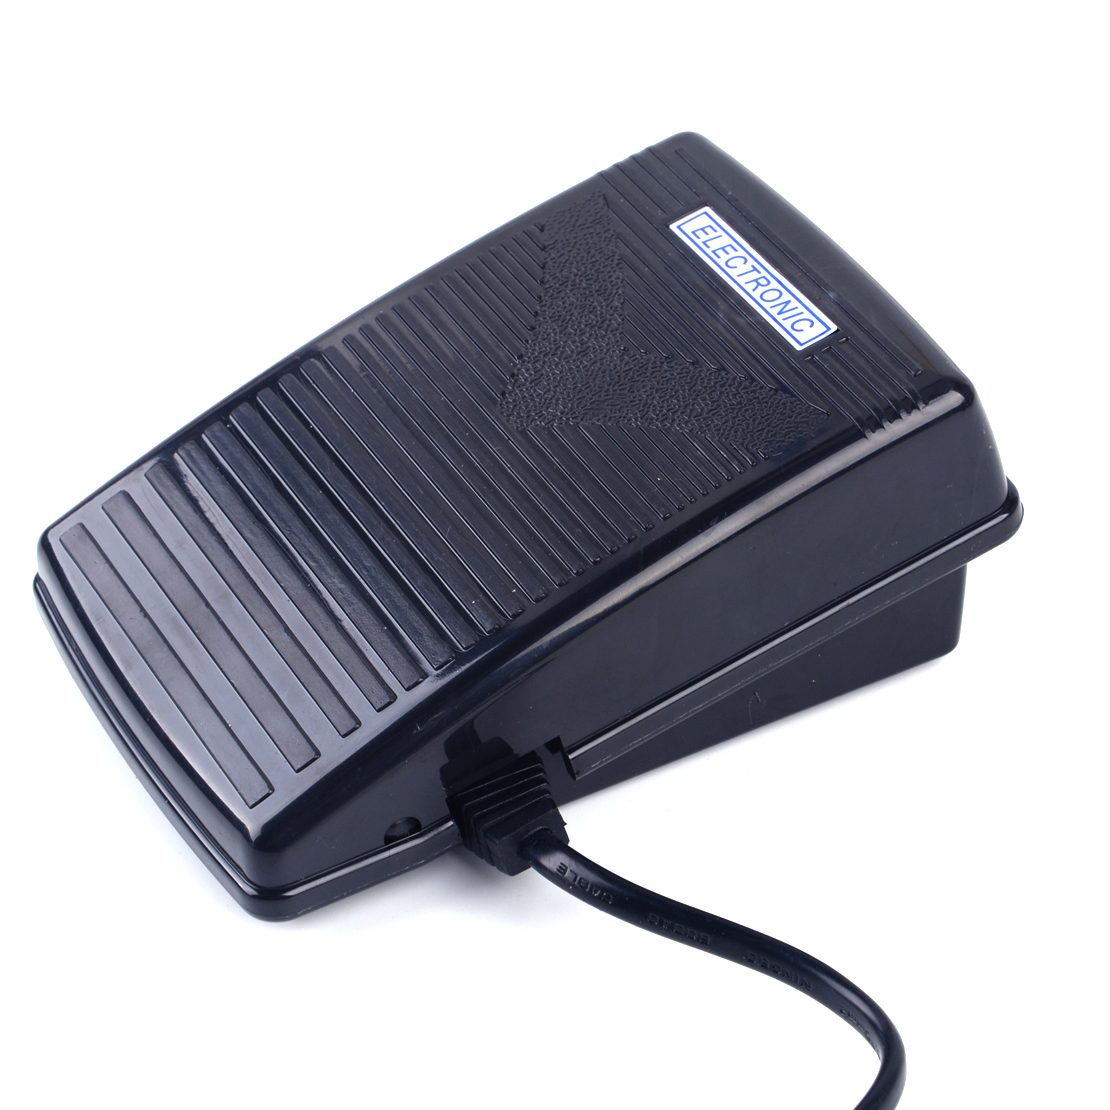 Foot Control Pedal W// Power Cord 220V EU Plug Fit for Home Sewing Machine Singer